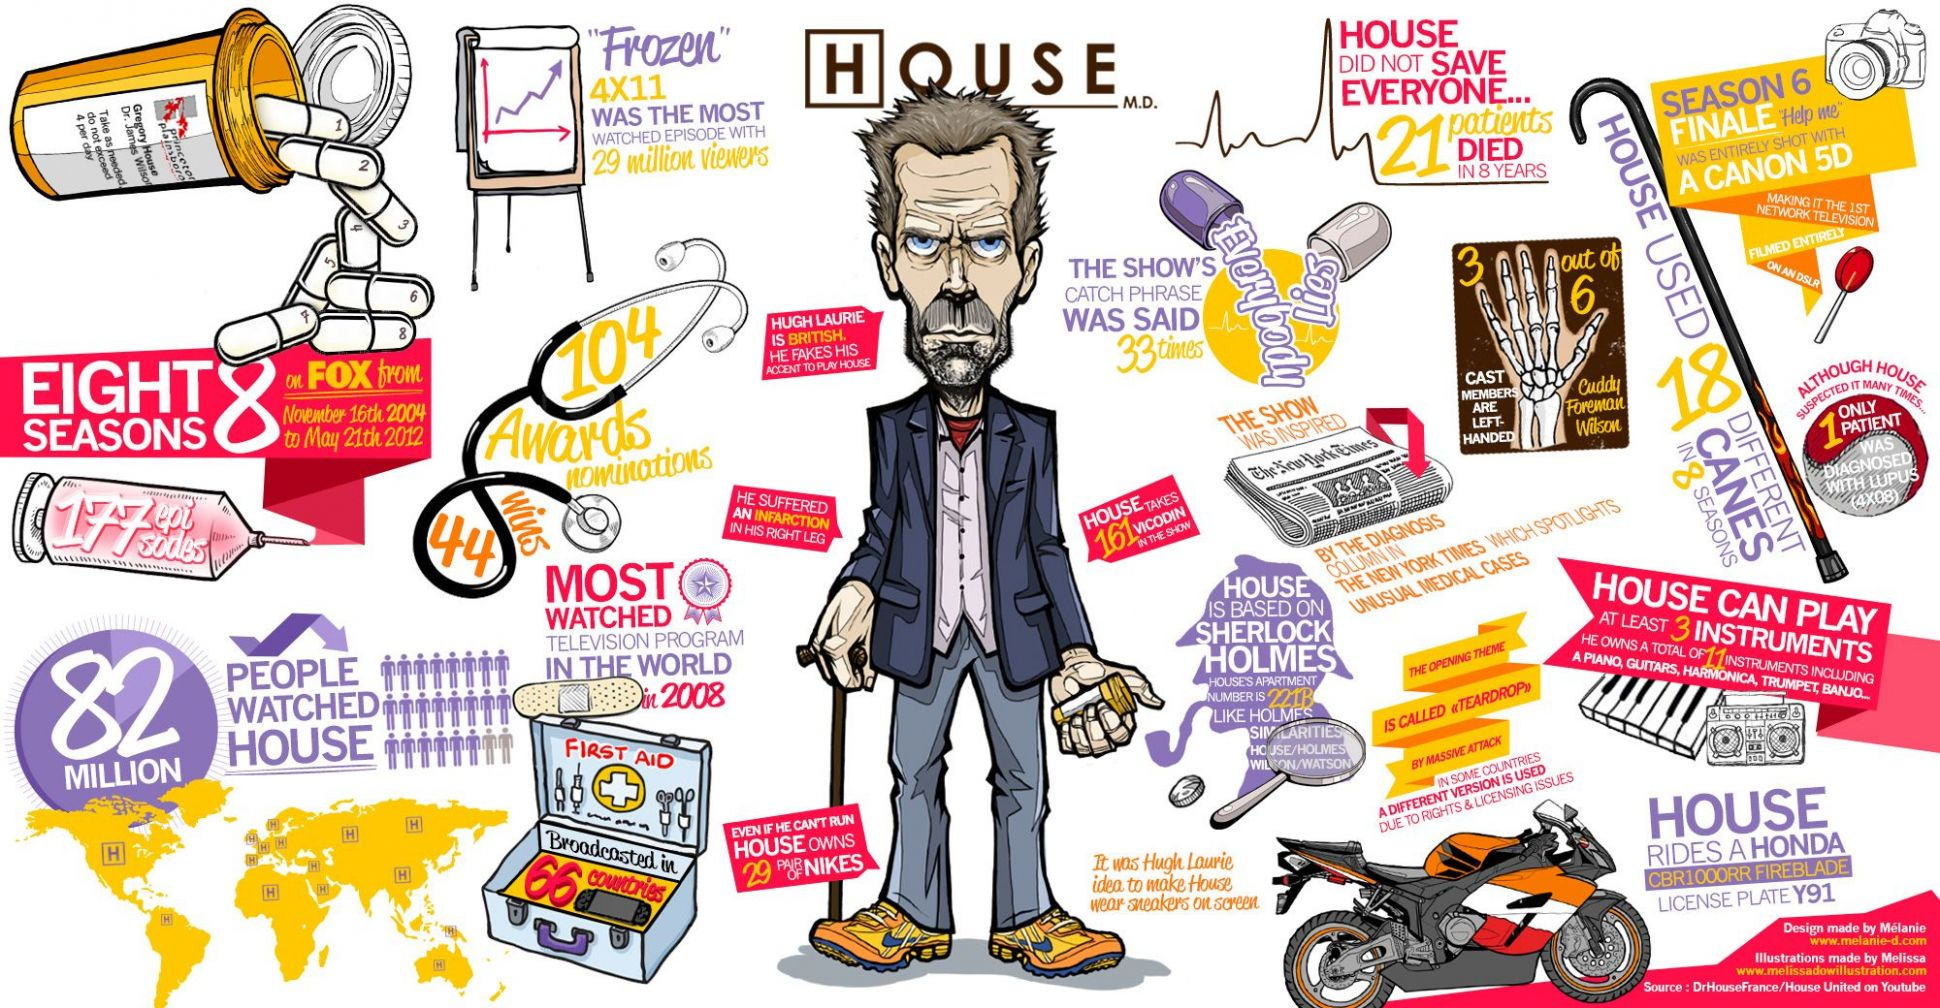 INFOGRAPHIC INSPIRATION - Buscar con Google - house md inspiration